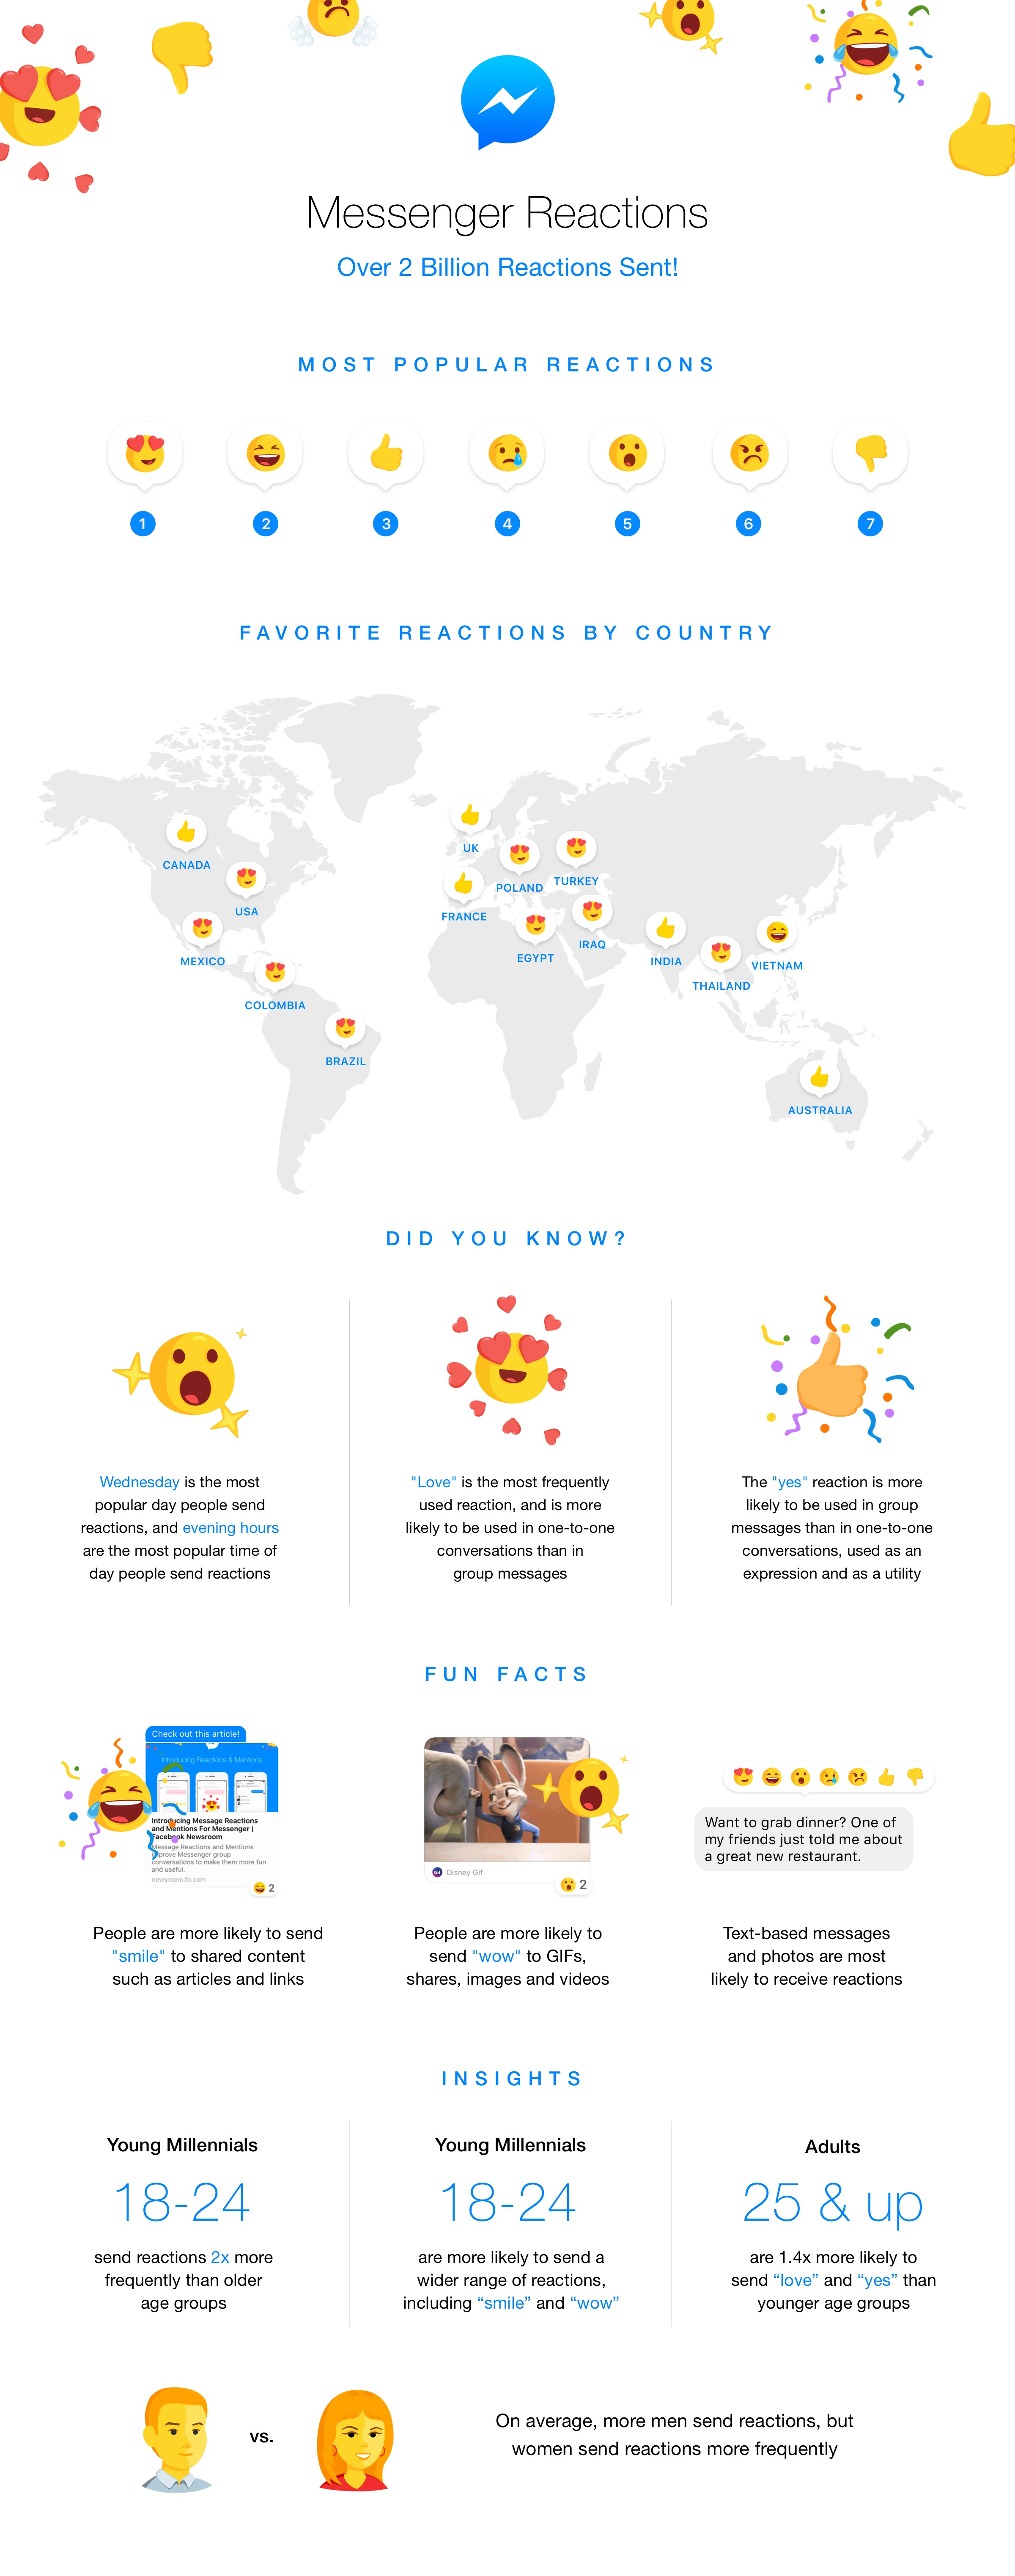 Facebook Messenger Reactions Used 2 Billion Times in First 2 Months [Infographic] | Social Media Today